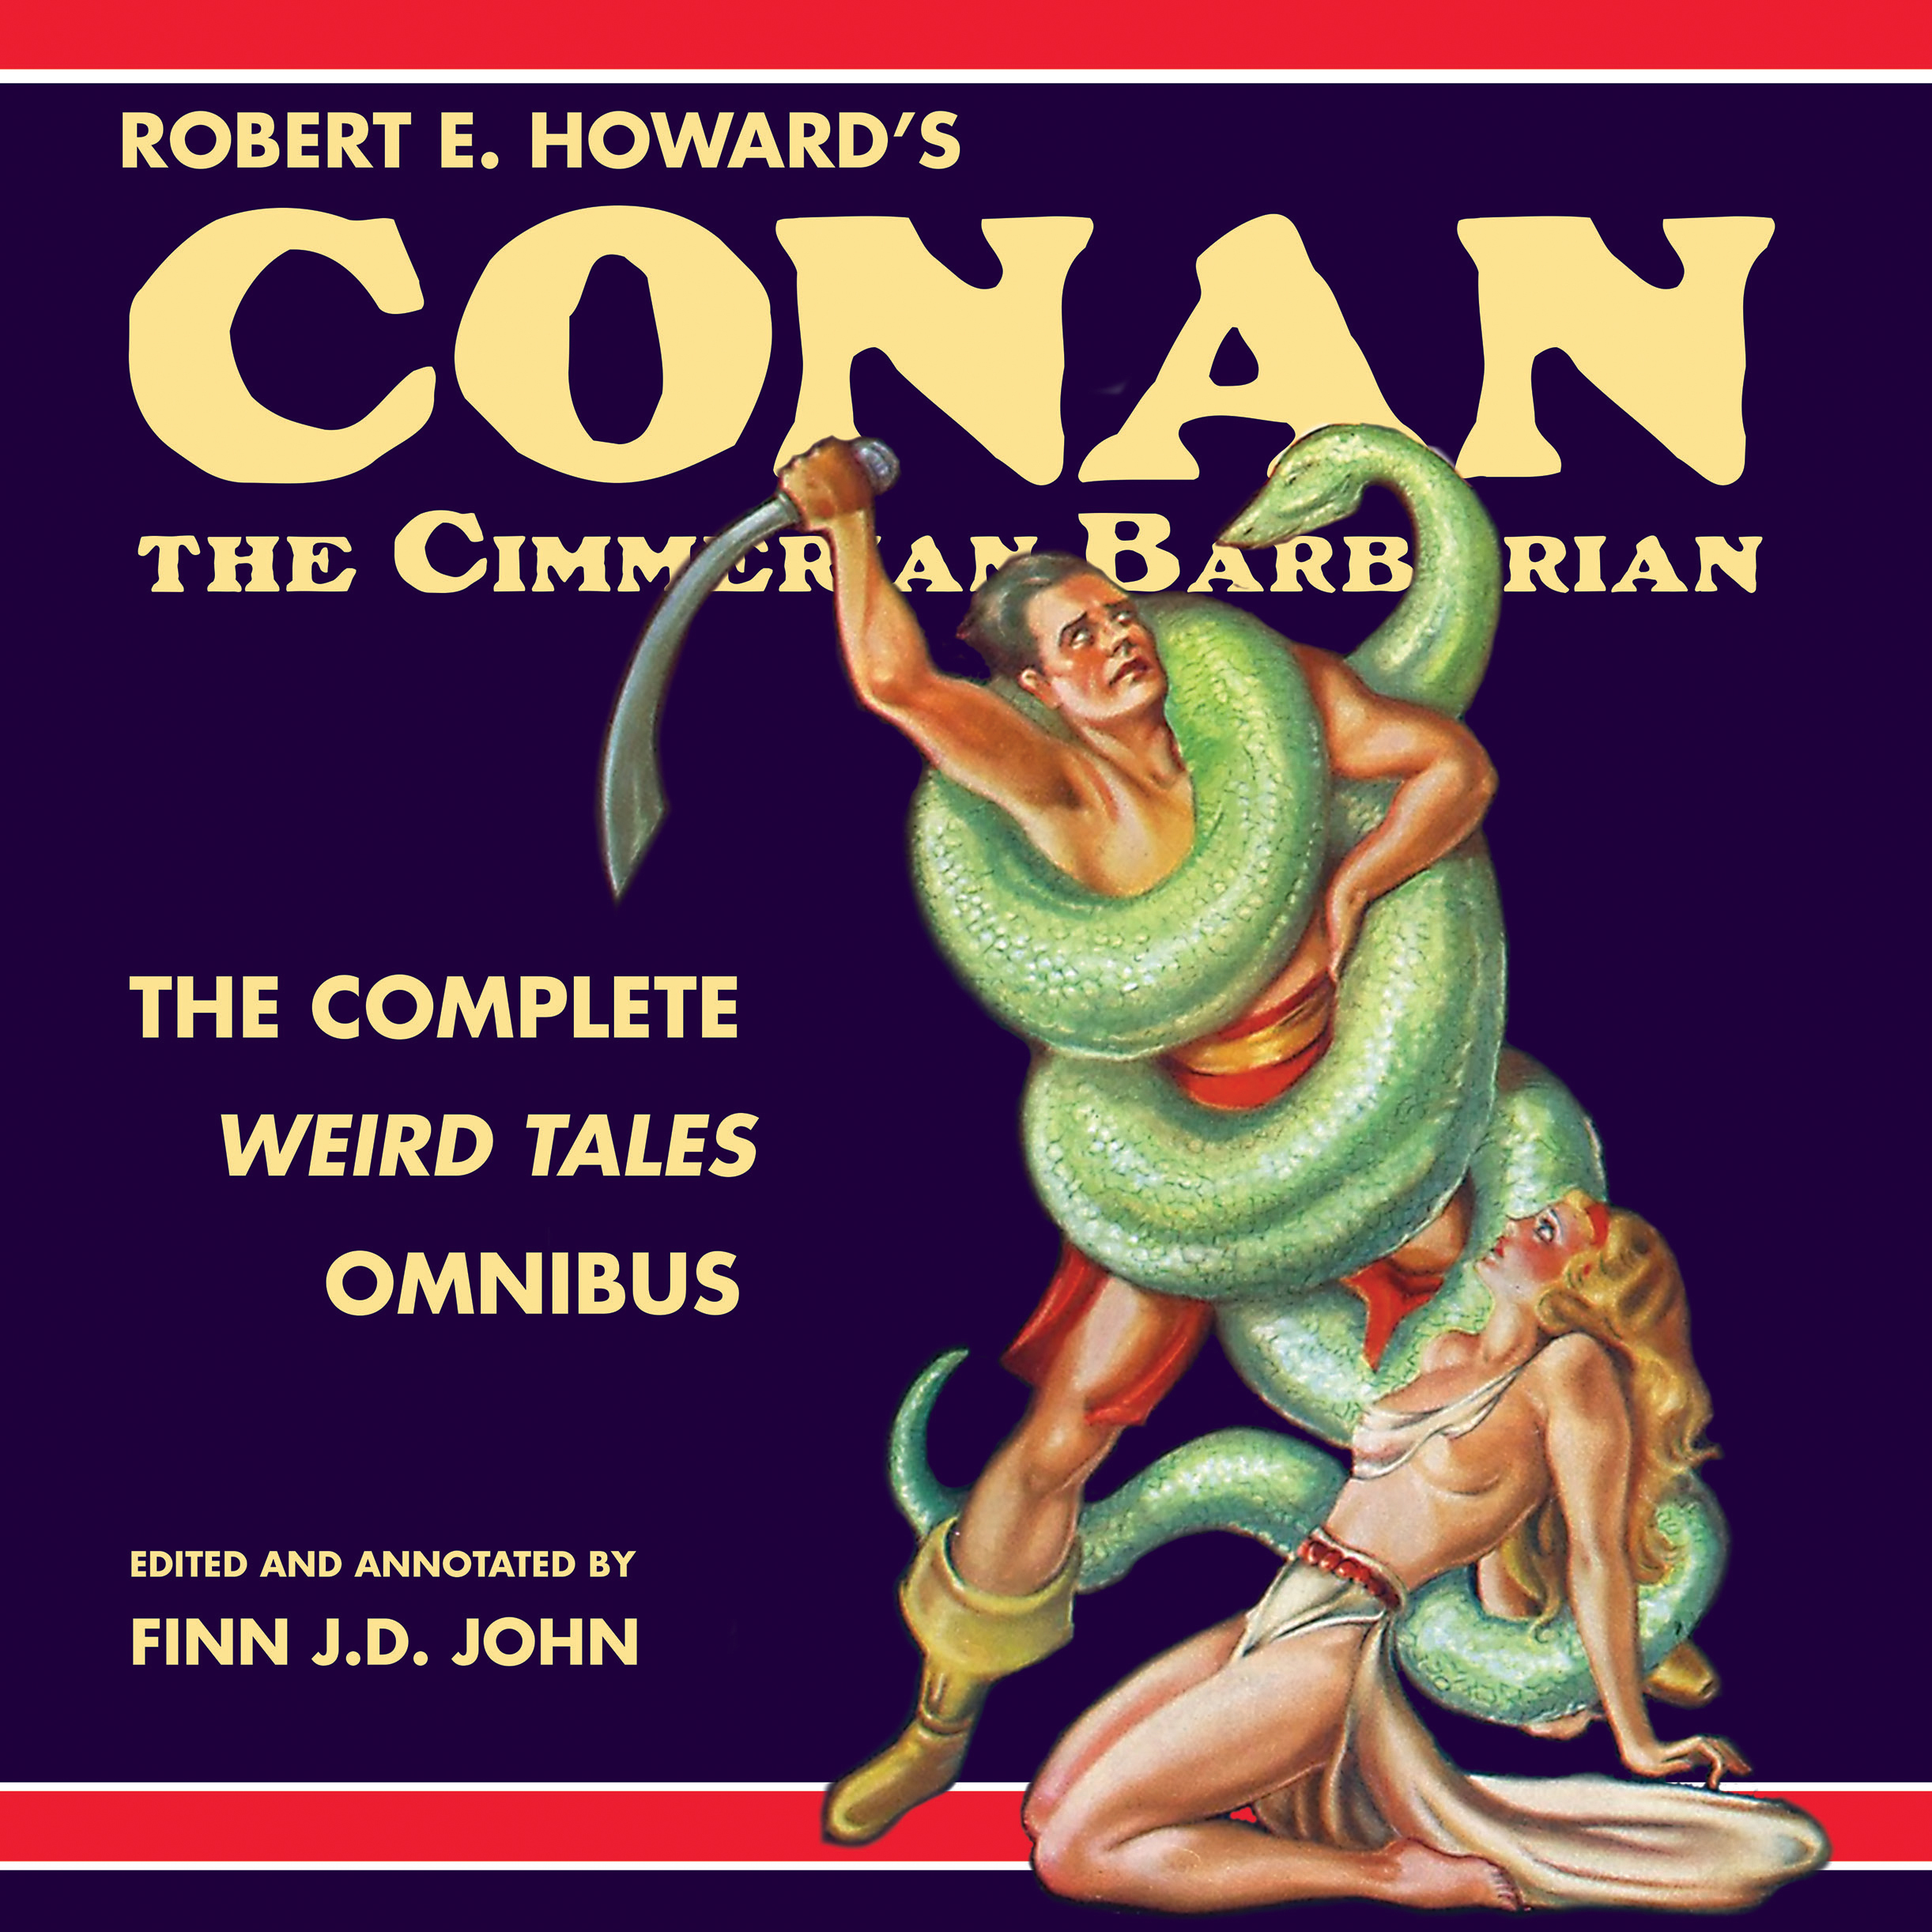 Printable Robert E. Howard's Conan the Cimmerian Barbarian:  The Complete Weird Tales Omnibus Audiobook Cover Art